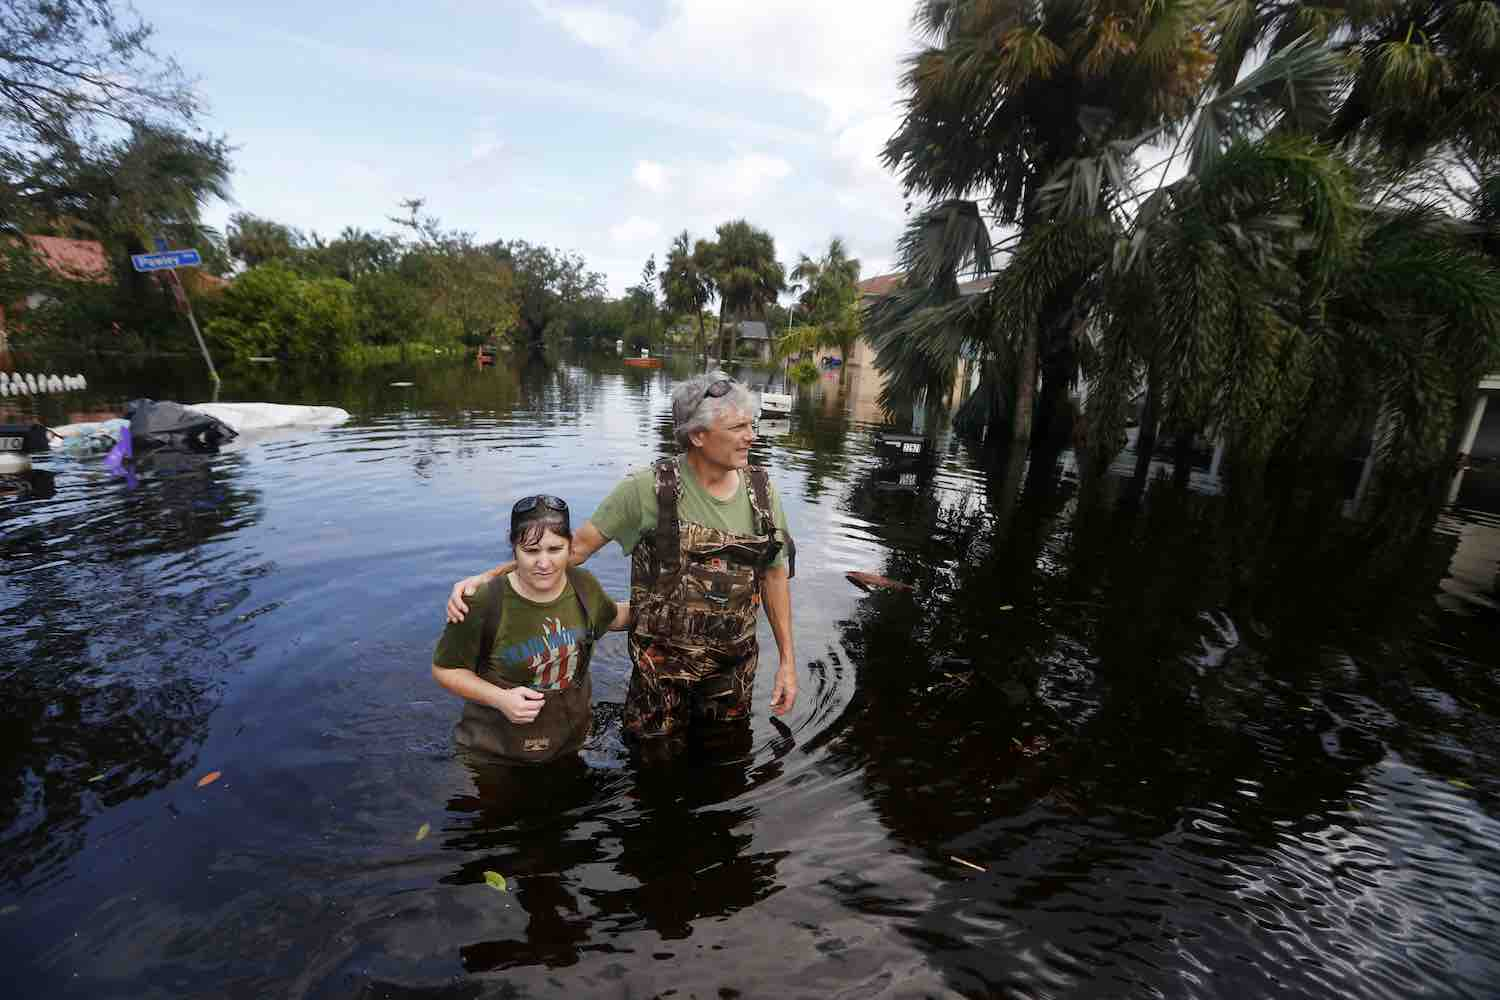 "<div class=""meta image-caption""><div class=""origin-logo origin-image kabc""><span>kabc</span></div><span class=""caption-text"">Kelly McClenthen returns to see the flood damage to her home with her boyfriend Daniel Harrison in the aftermath of Hurricane Irma in Bonita Springs, Fla., Monday, Sept. 11, 2017. (AP Photo/Gerald Herbert)</span></div>"